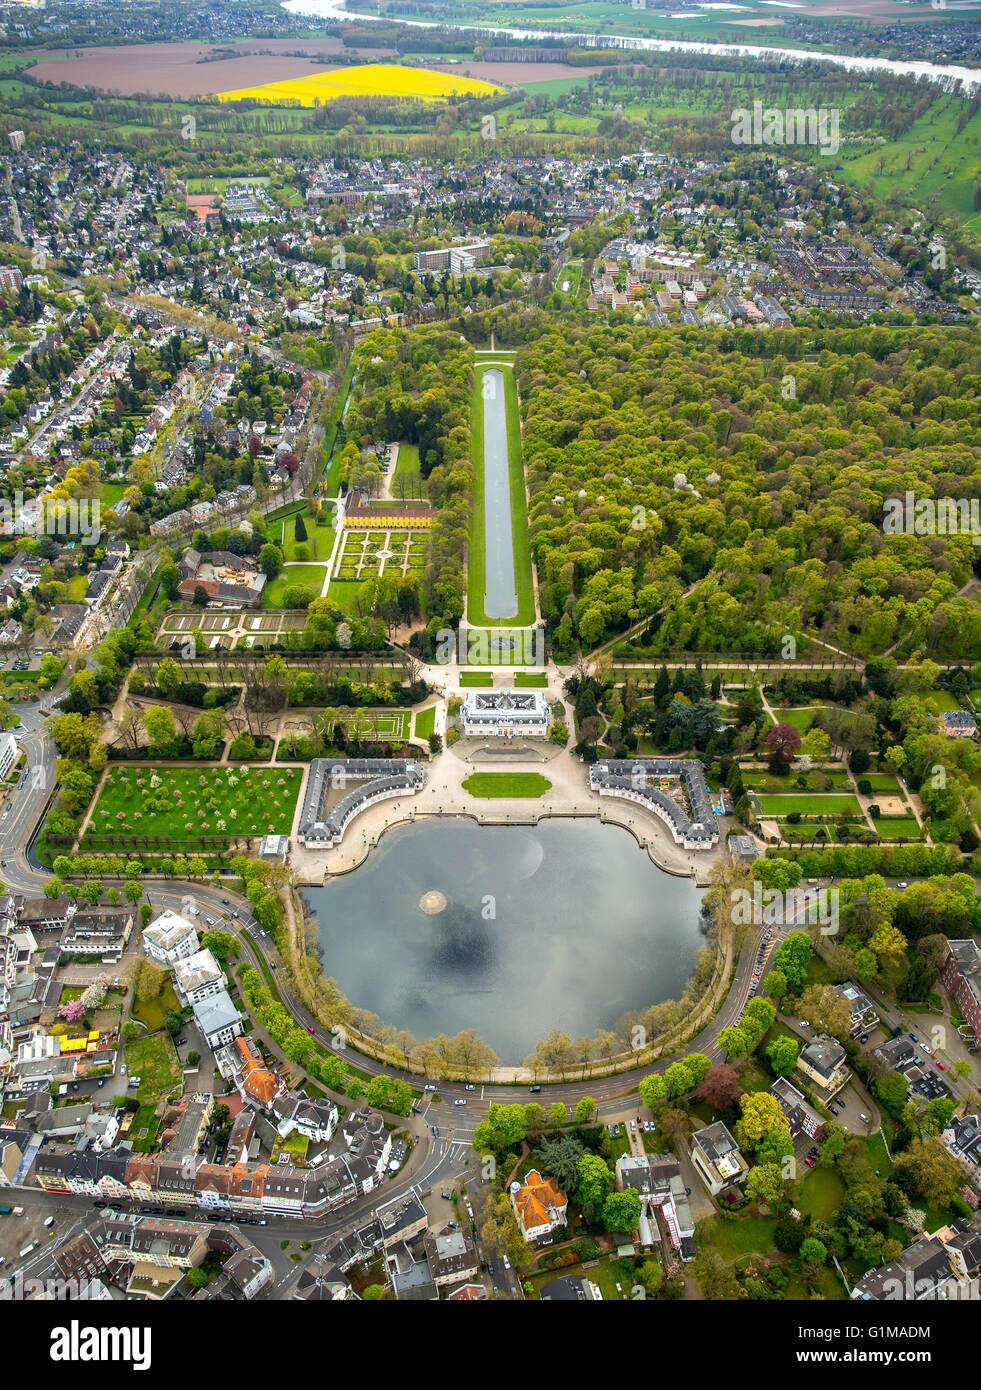 Aerial view, Schloss Benrath Castle with pond and palace gardens, Benrather Schlossallee, Dusseldorf, Rhineland, Stock Photo